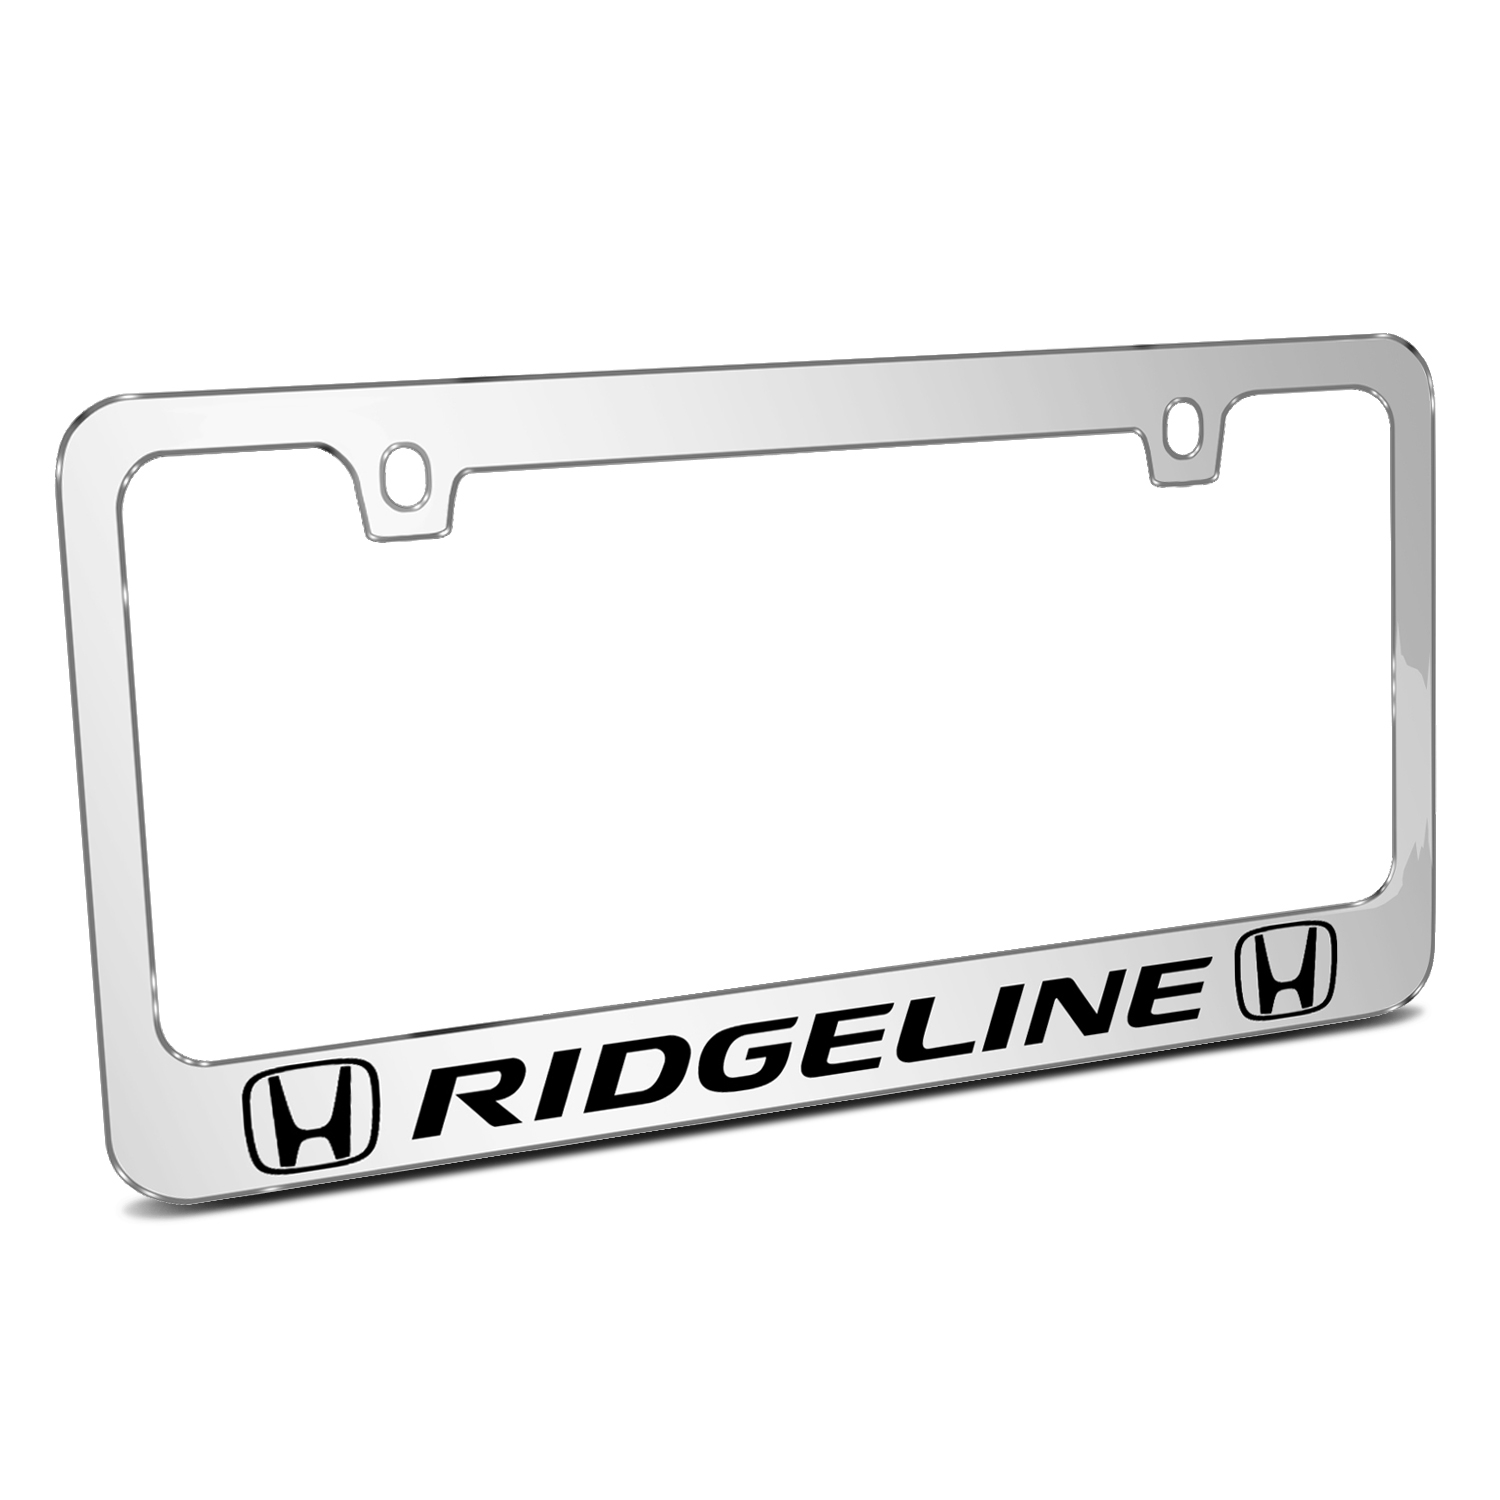 Honda Ridgeline Dual Logo Mirror Chrome Metal License Plate Frame